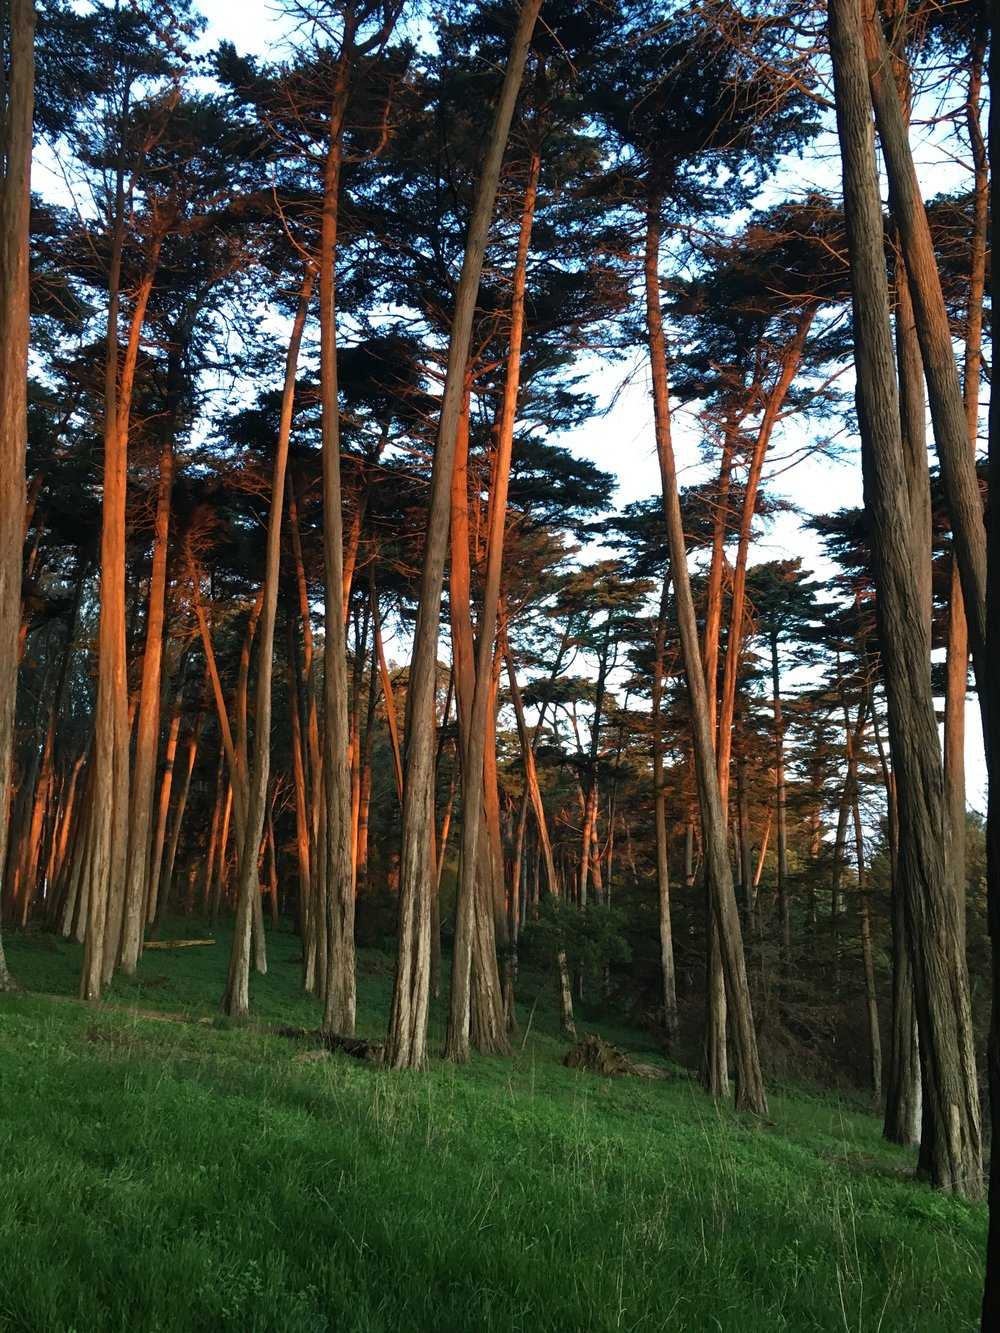 sunrise on the trees along the Presidio's ridge, my old neighborhood